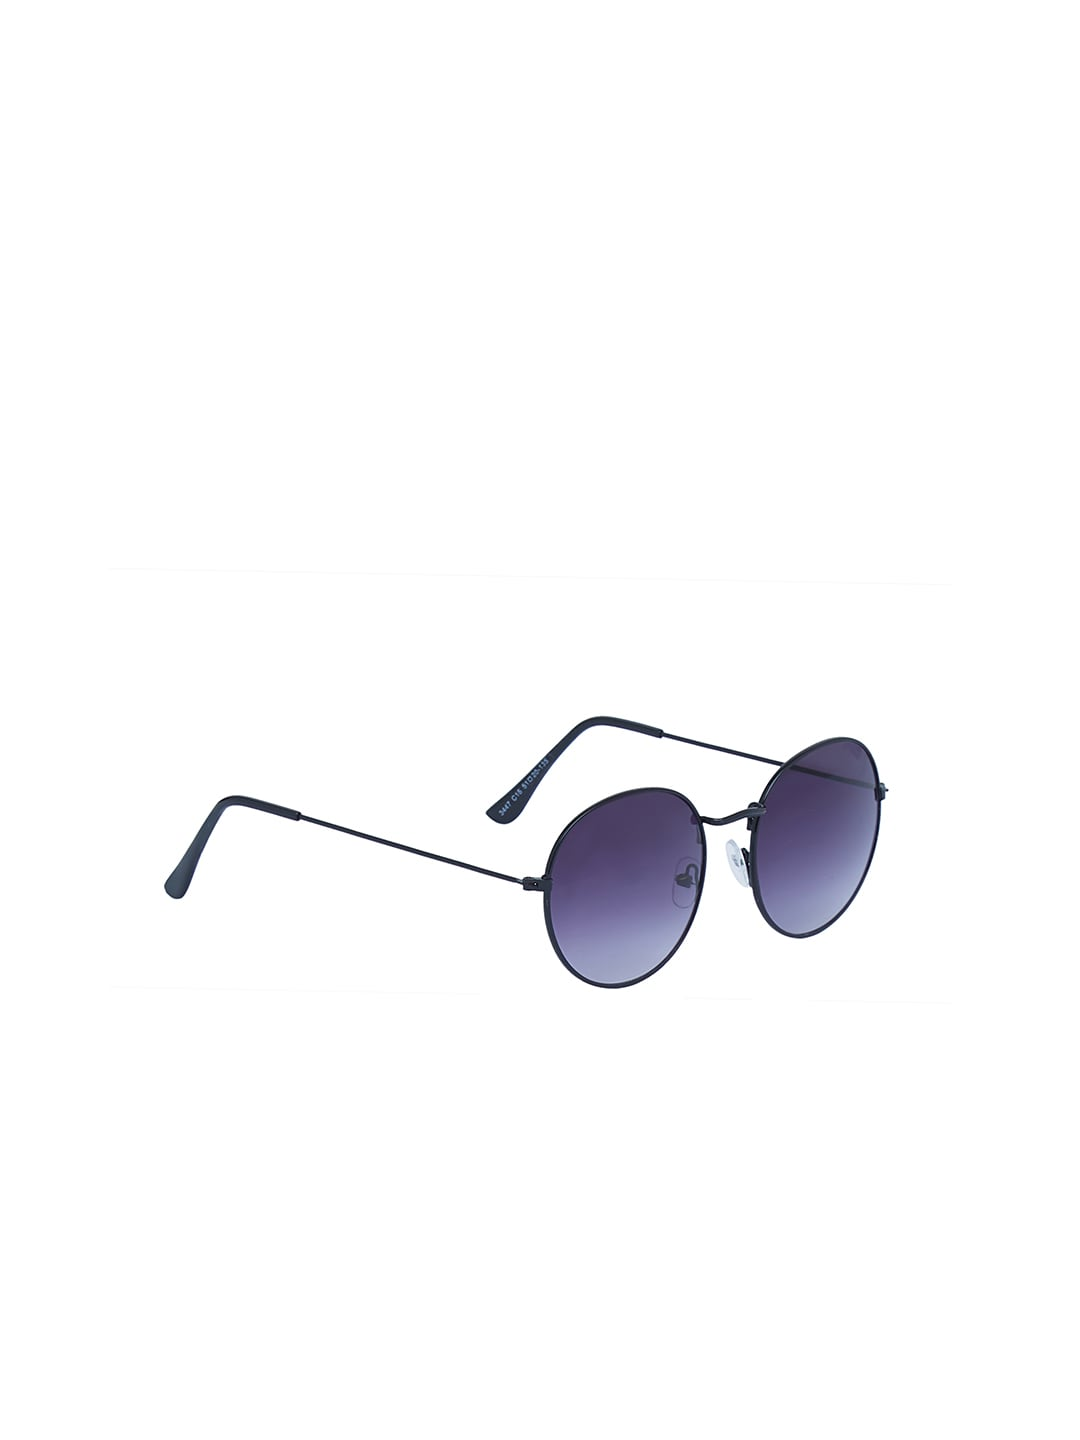 fca34314a5 Vast Sunglasses - Buy Vast Sunglasses online in India